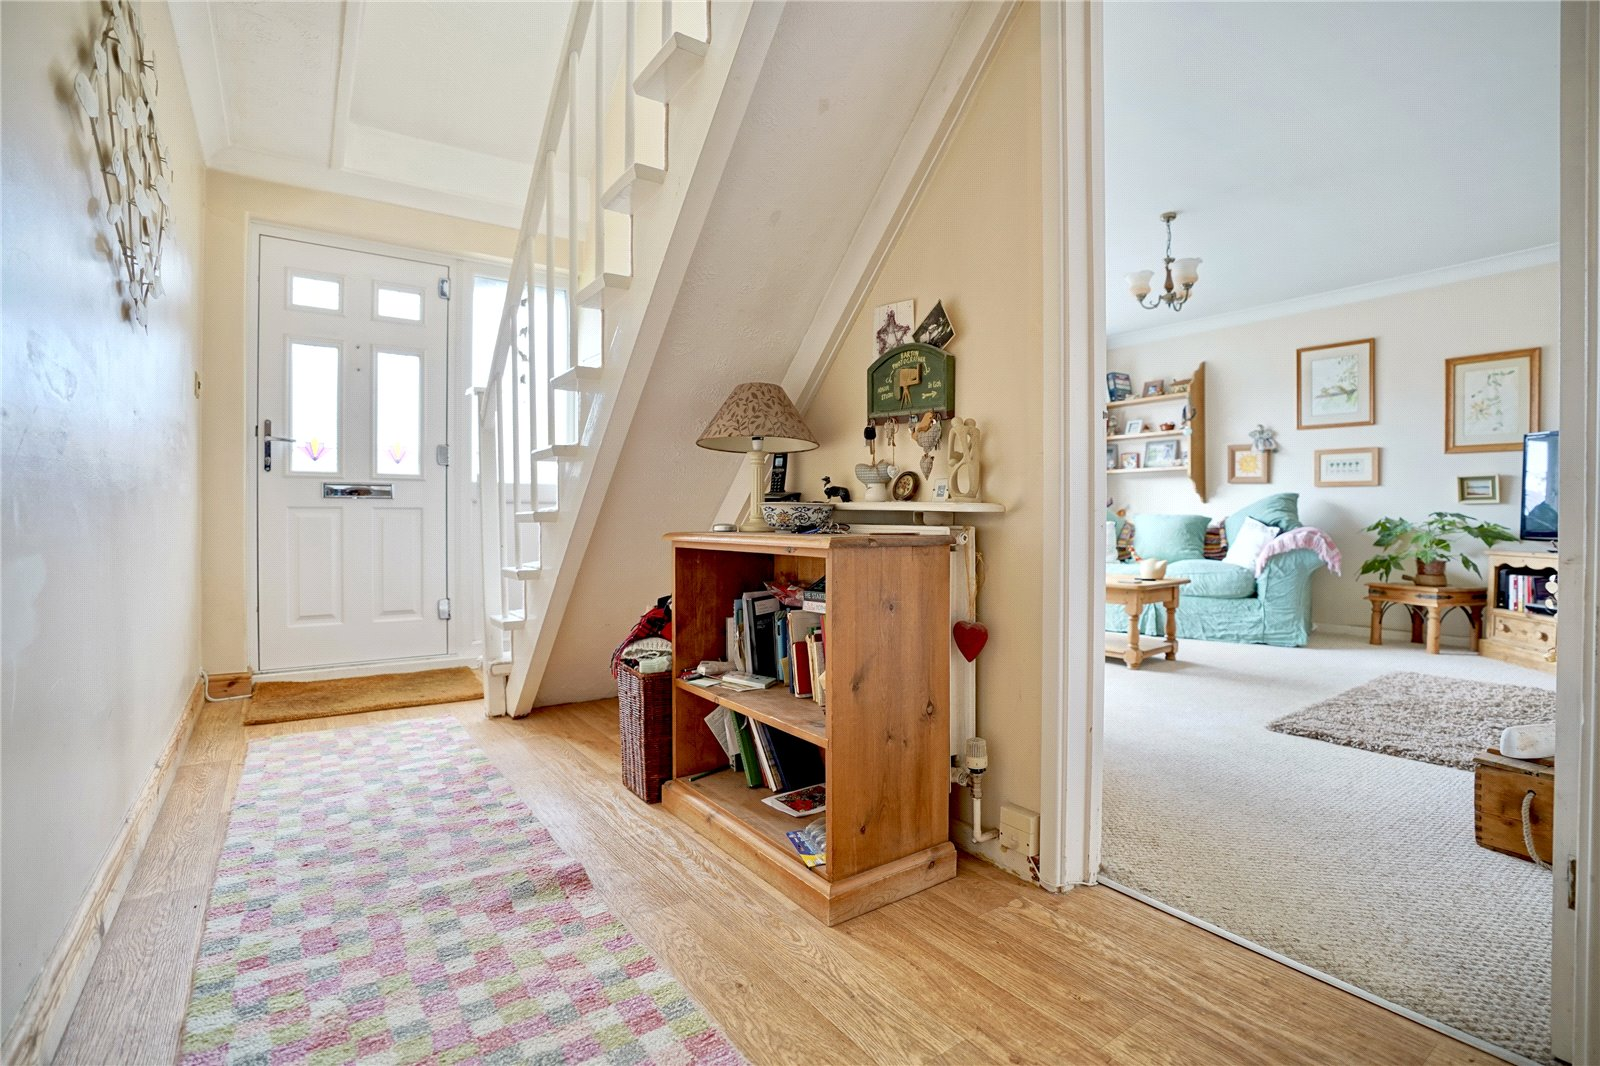 3 bed house for sale in Hemingford Grey, PE28 9BS 3